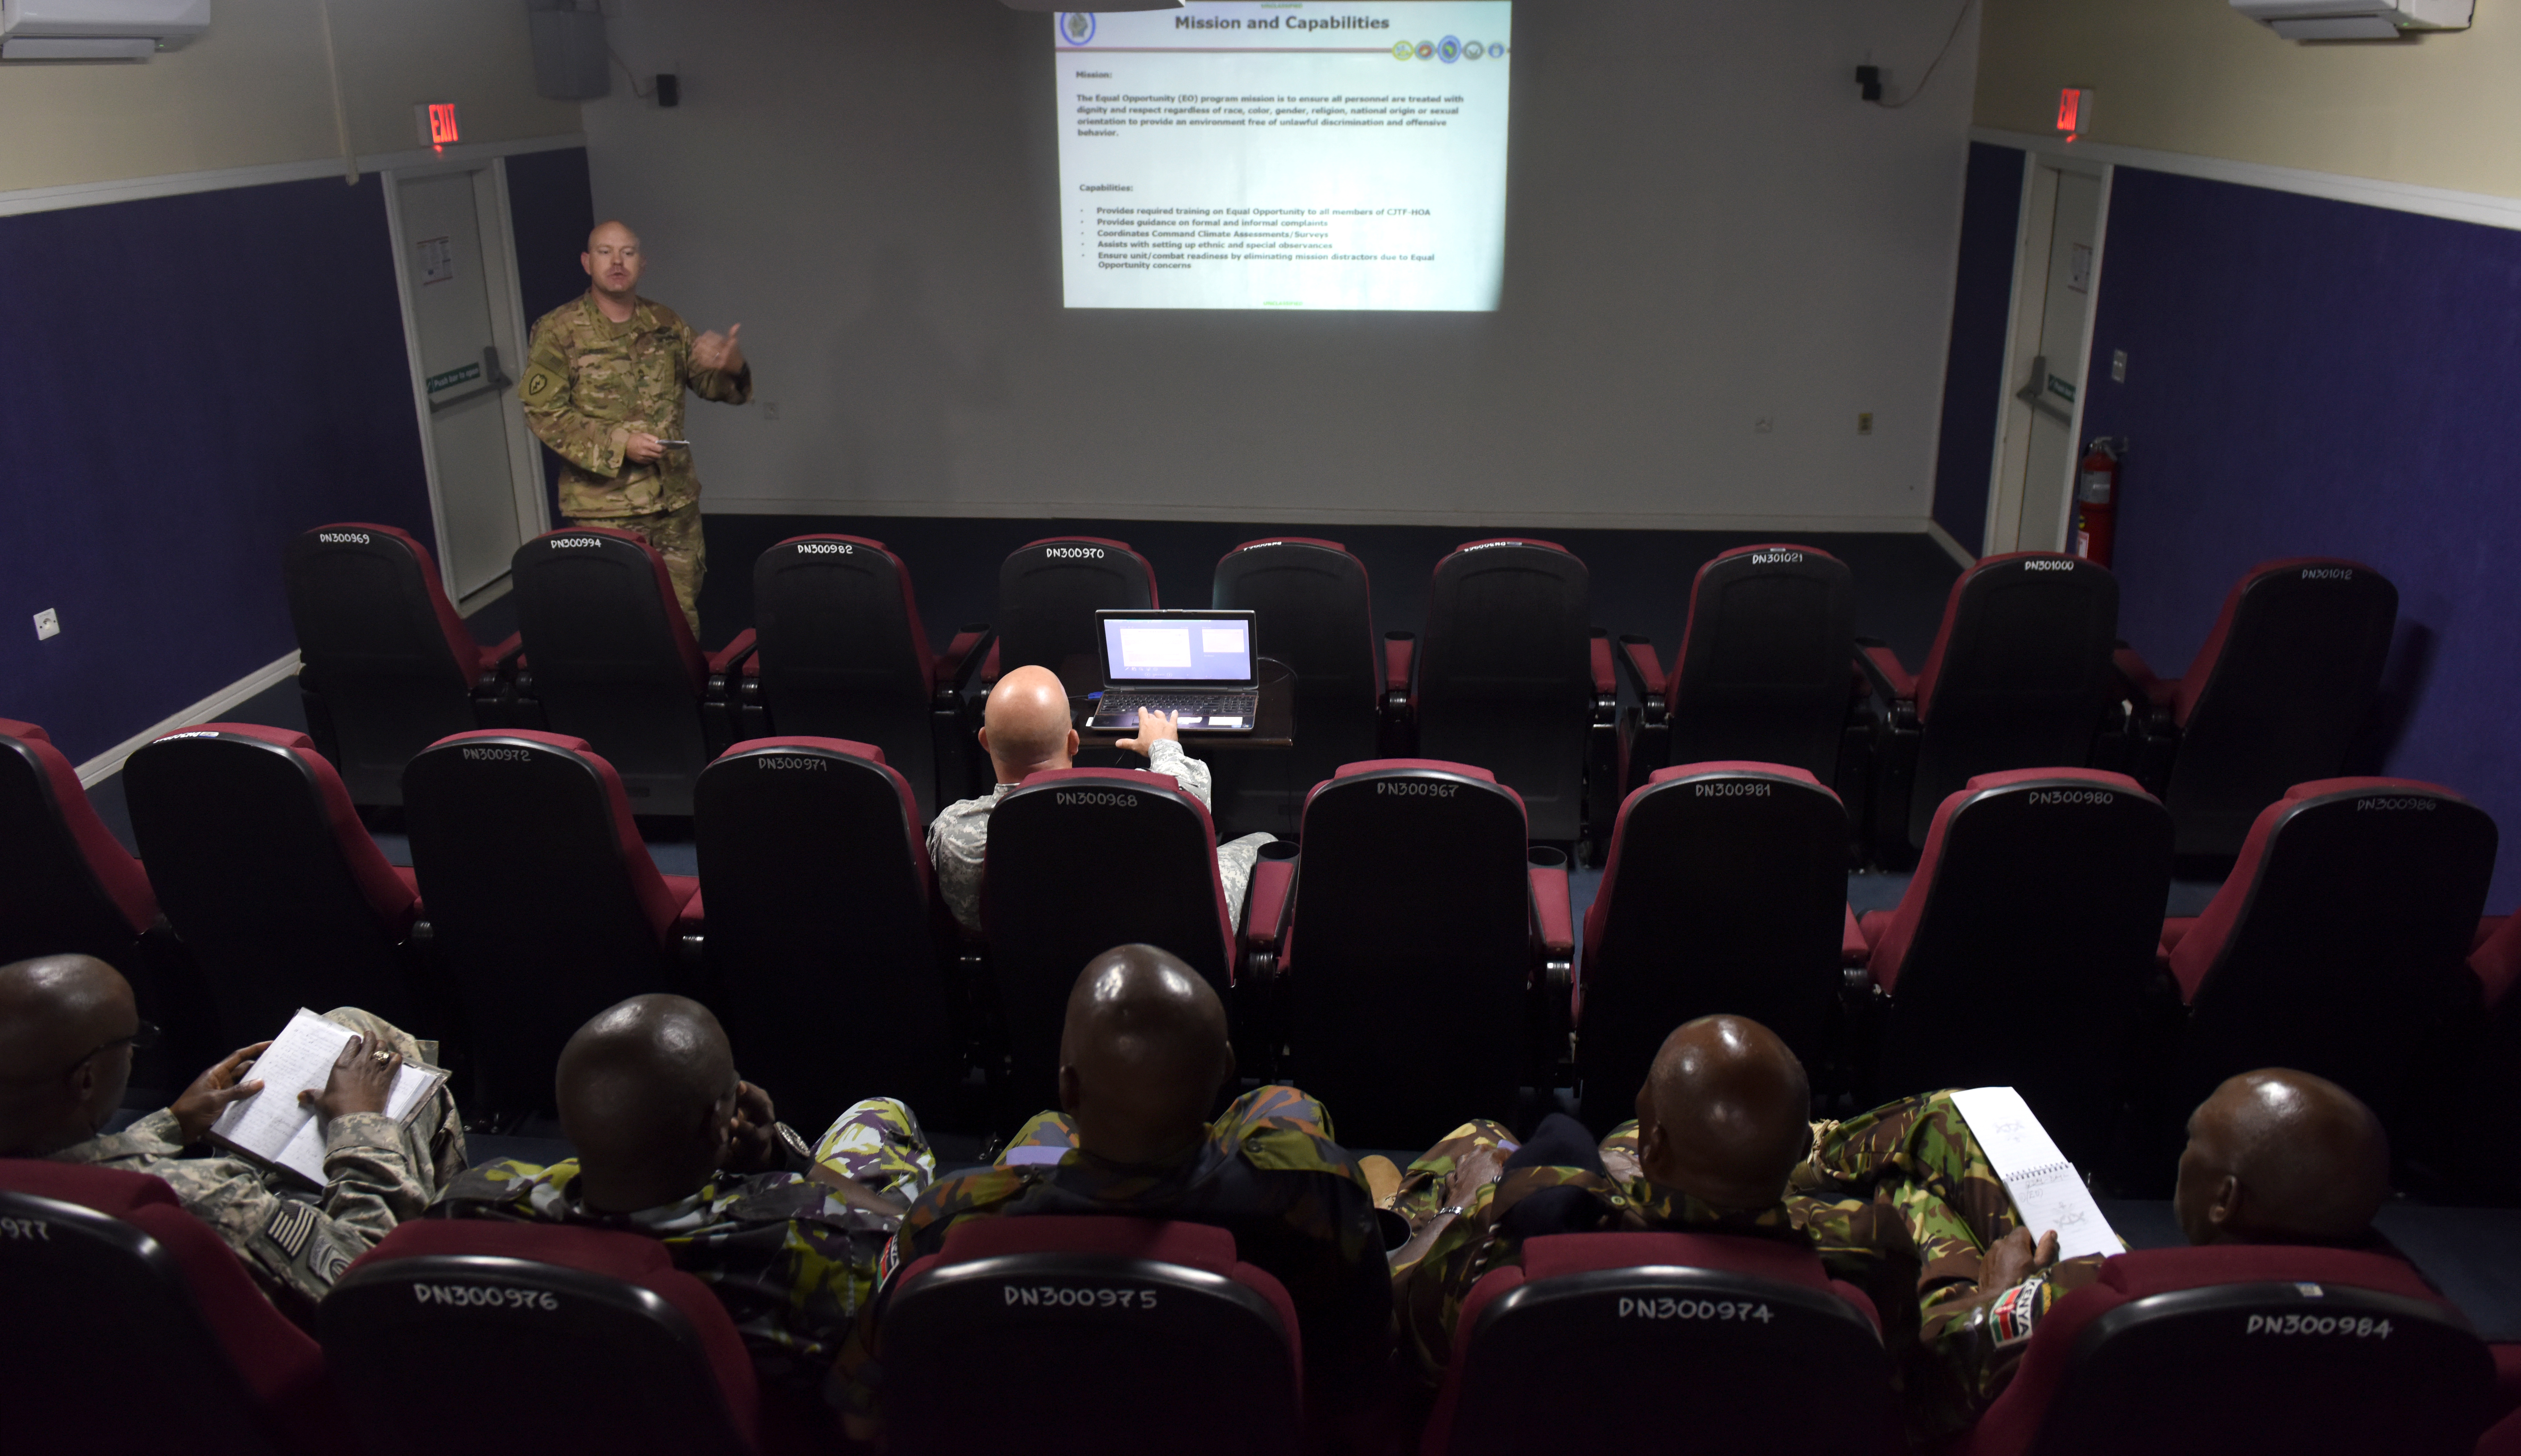 Senior enlisted leaders from the Kenya Defence Forces attend an Equal Opportunity brief at Camp Lemonnier, Djibouti, during an SEL engagement Feb. 11, 2016. The briefings focused on operations and how Combined Joint Task Force-Horn of Africa personnel accomplish the mission successfully, including equality and troop welfare. (U.S. Air Force photo by Staff Sgt. Kate Thornton)